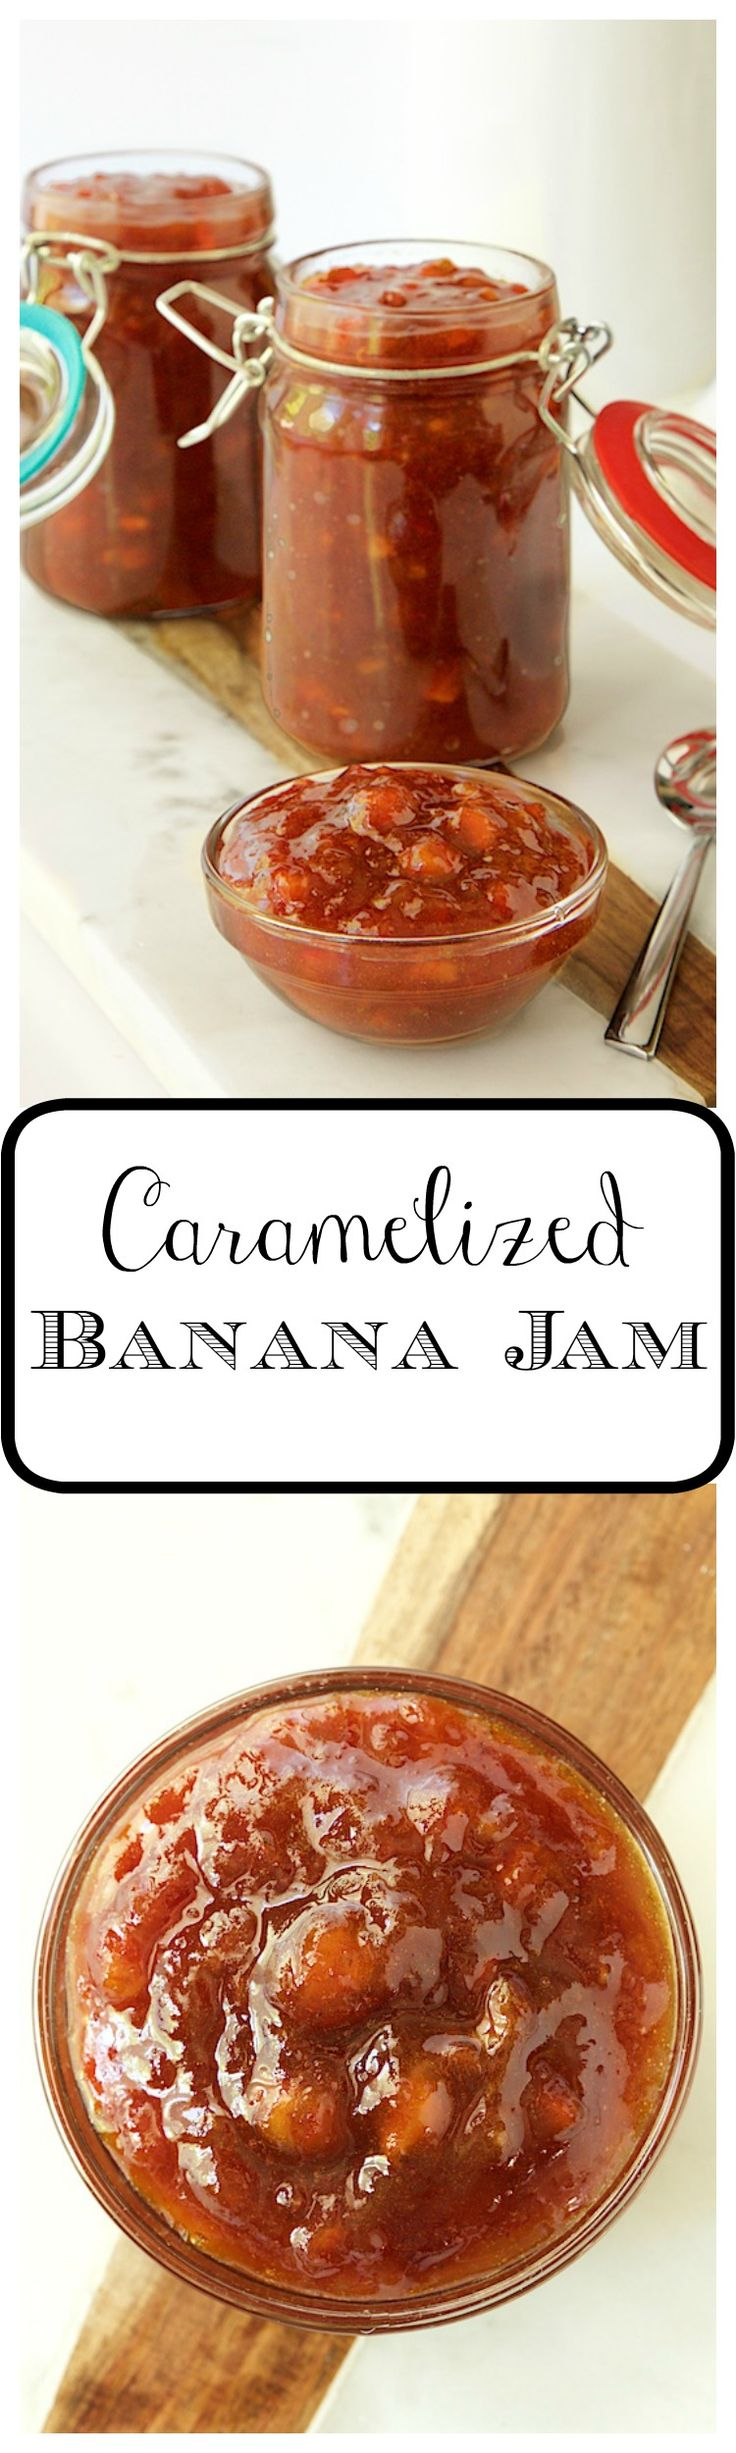 Caramelized Banana Jam - amazingly delicious on yogurt, toast, biscuits, pancakes, ice cream... and another way to use ripe bananas